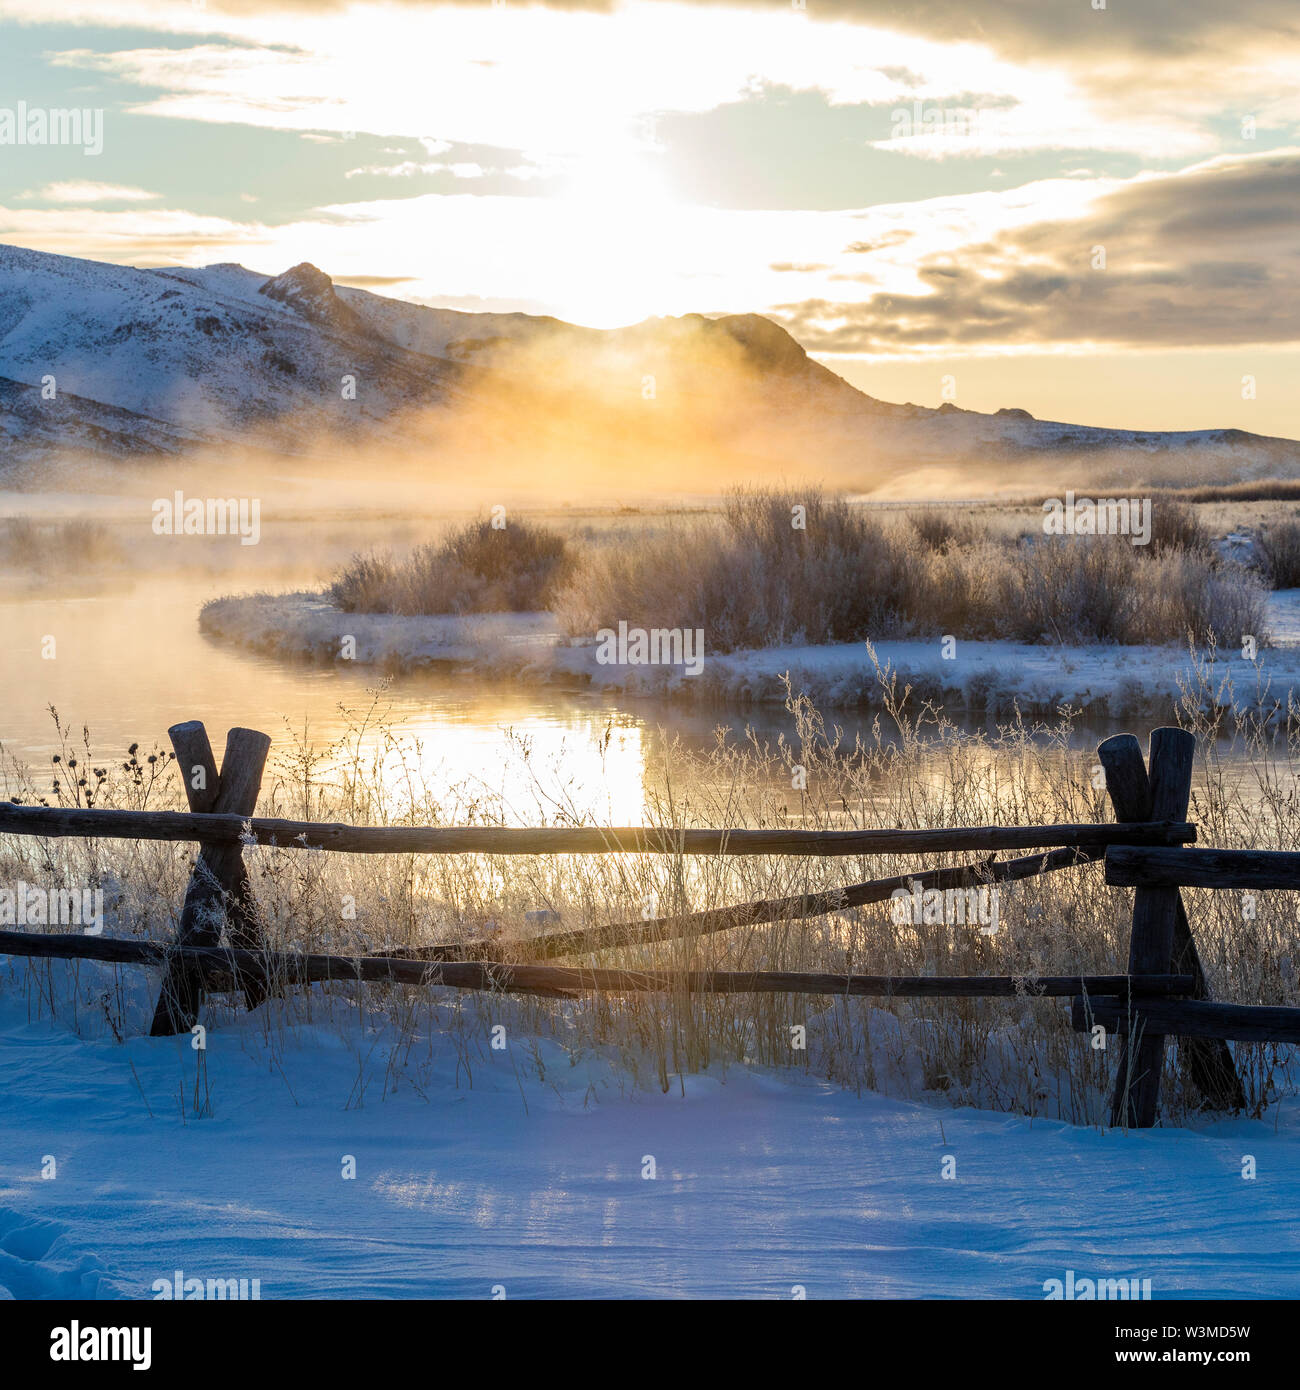 Fence by river at sunrise in Picabo, Idaho - Stock Image